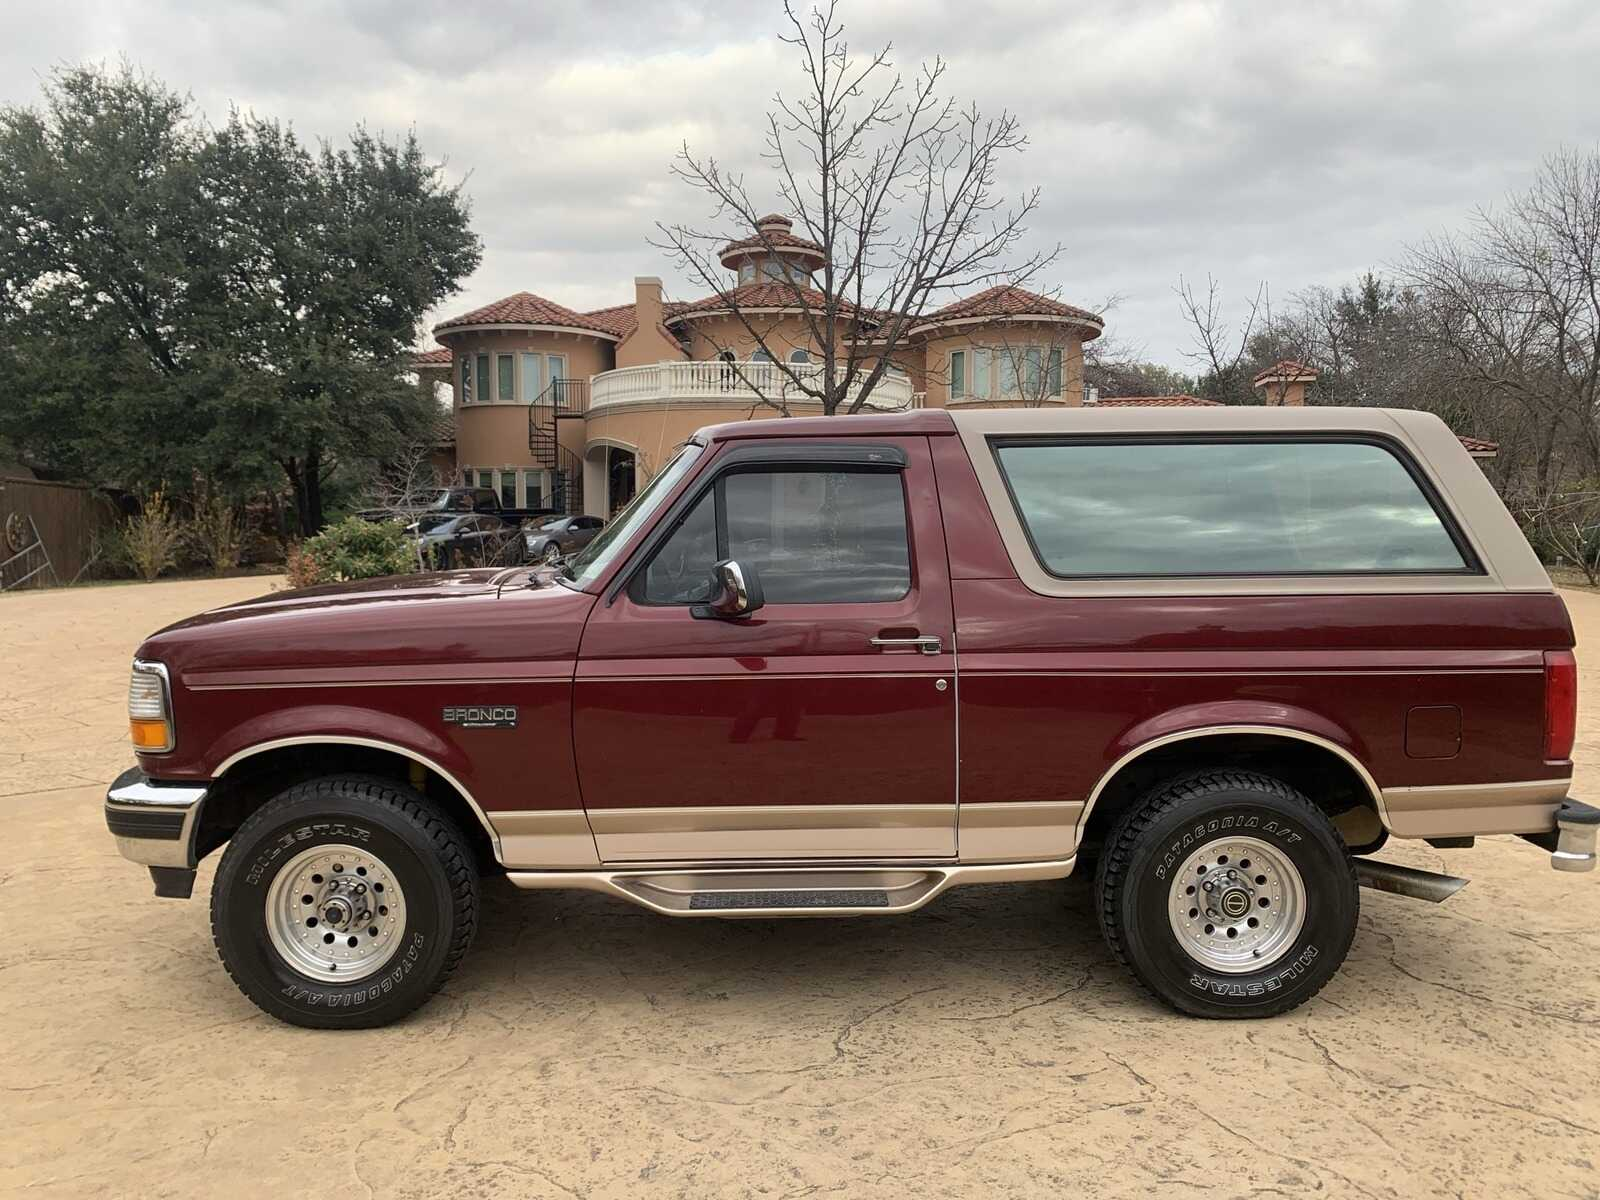 Search For New And Used 1996 Ford Bronco For Sale In Mississippi